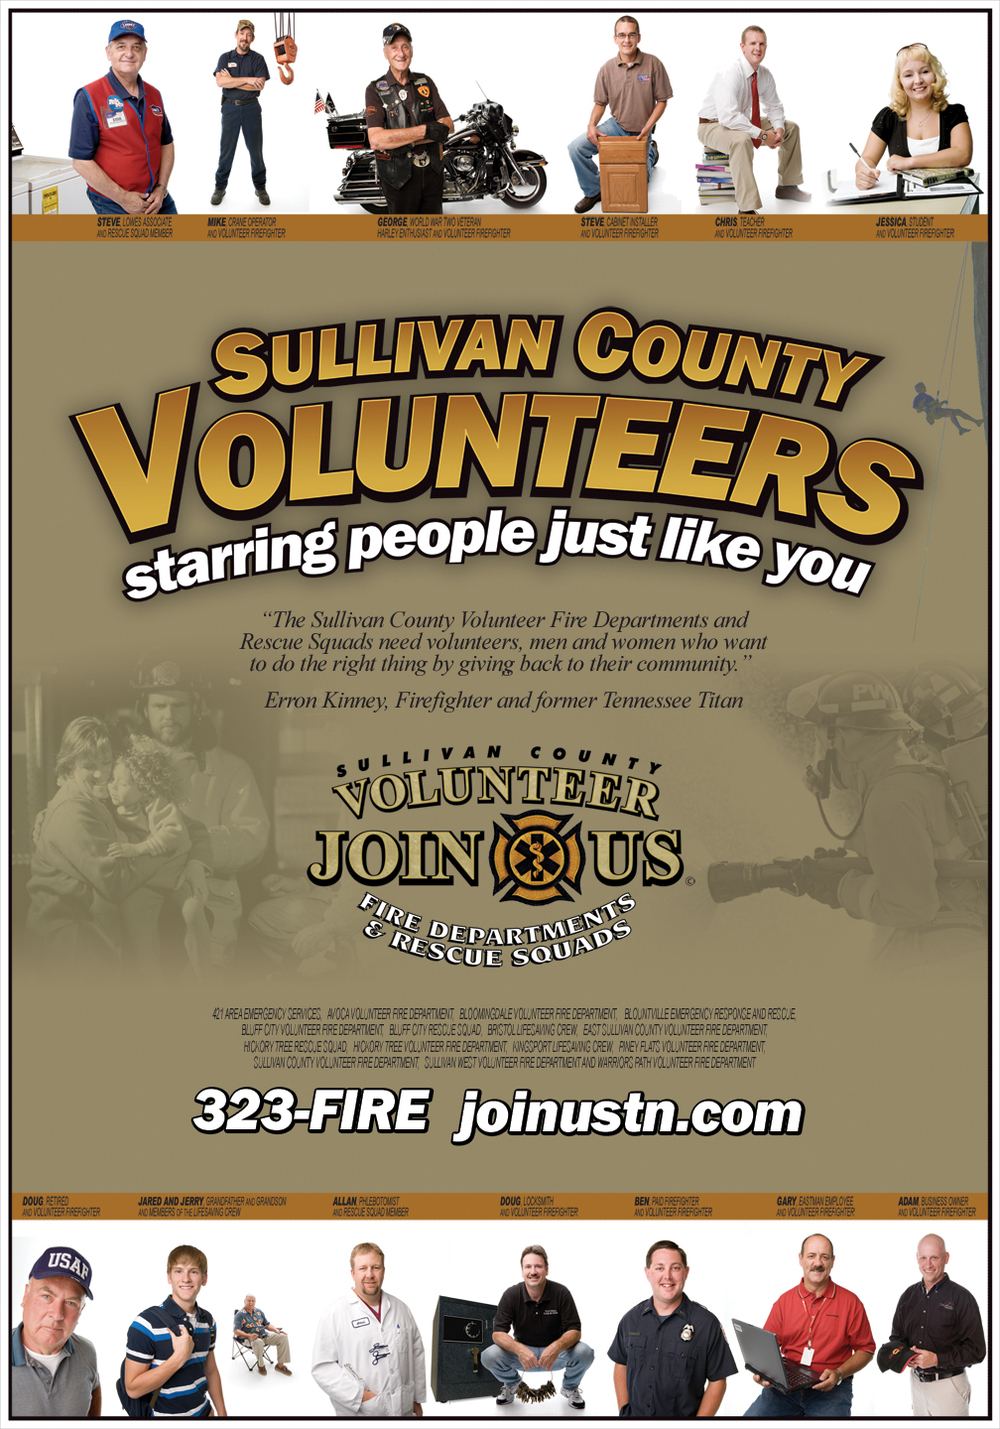 VolunteerPoster.jpg